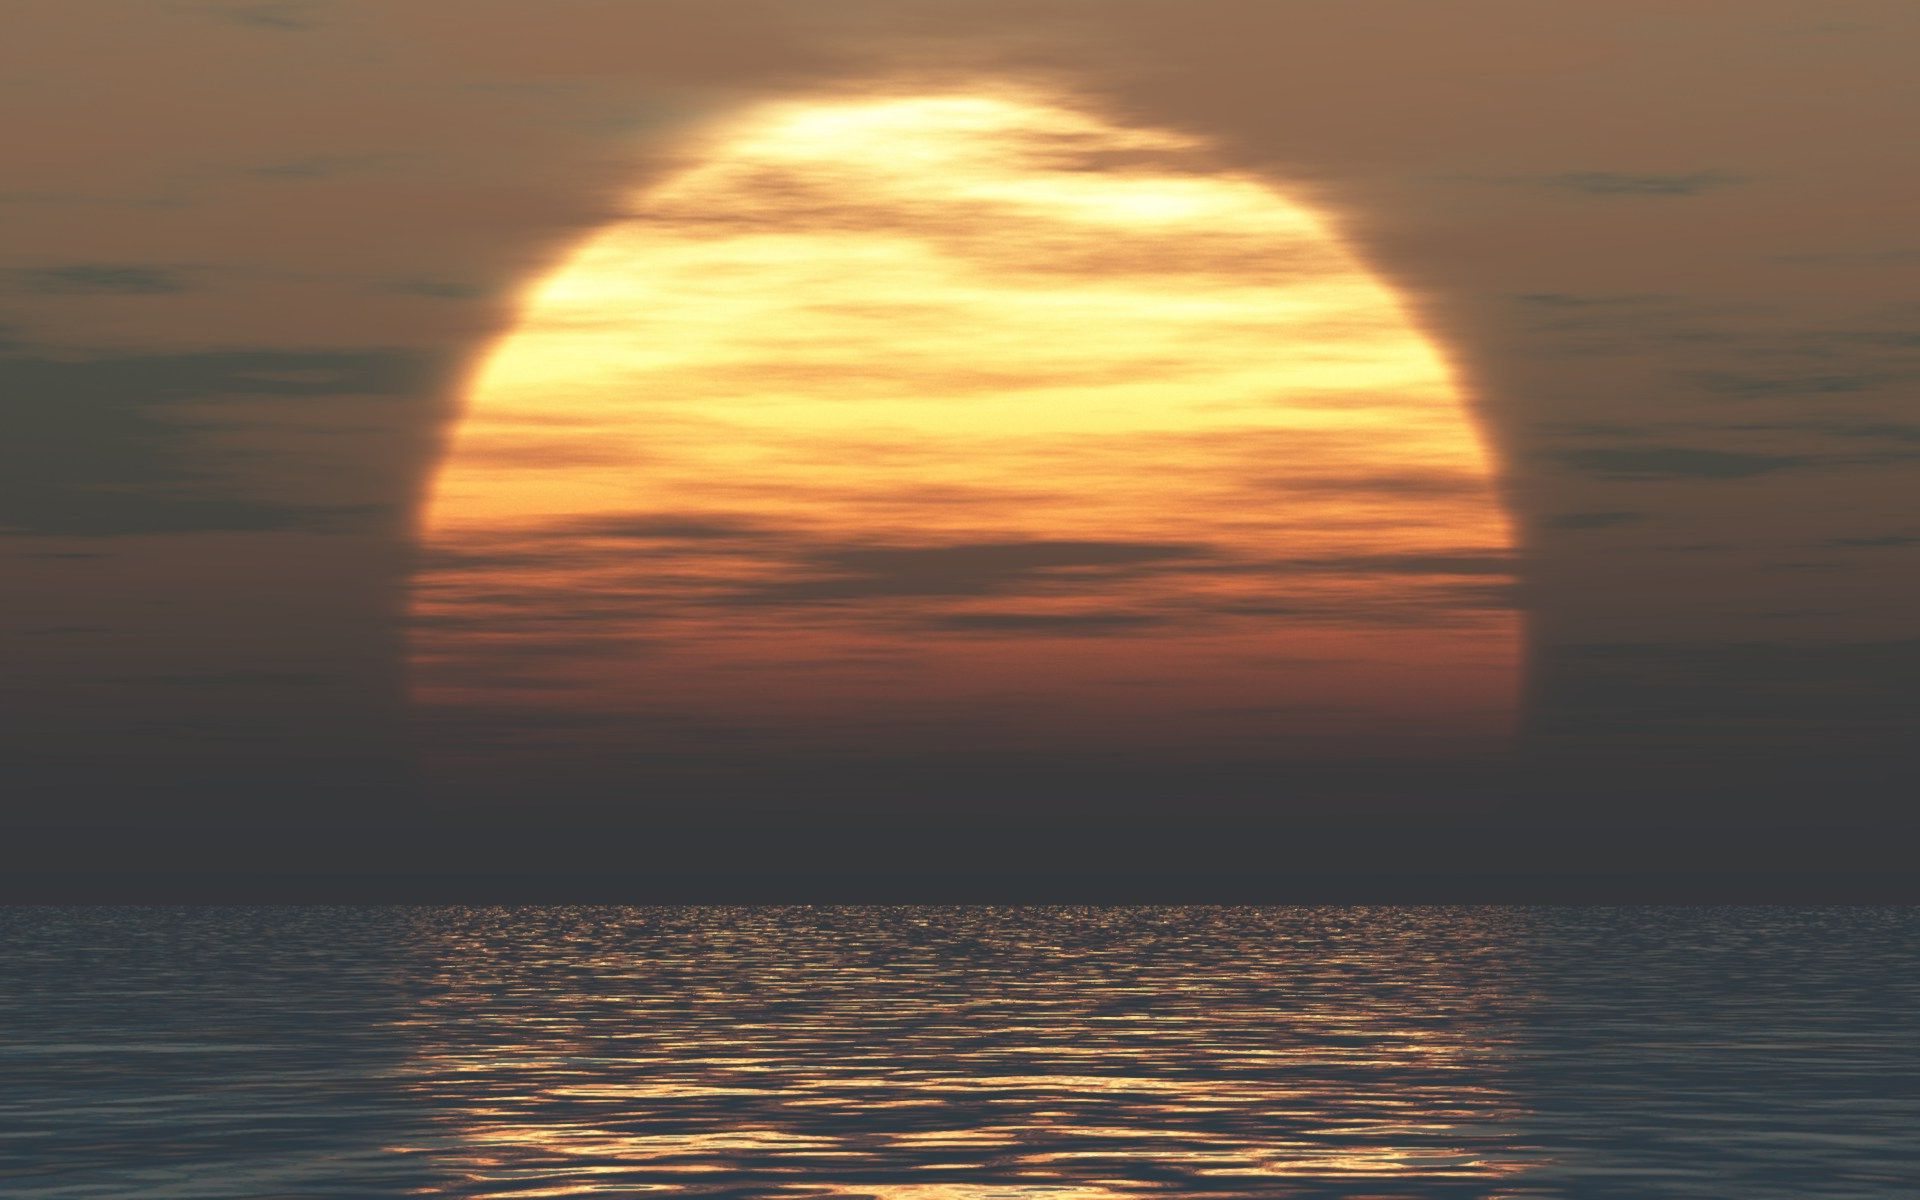 Different Sunset View Over the Ocean (click to view)